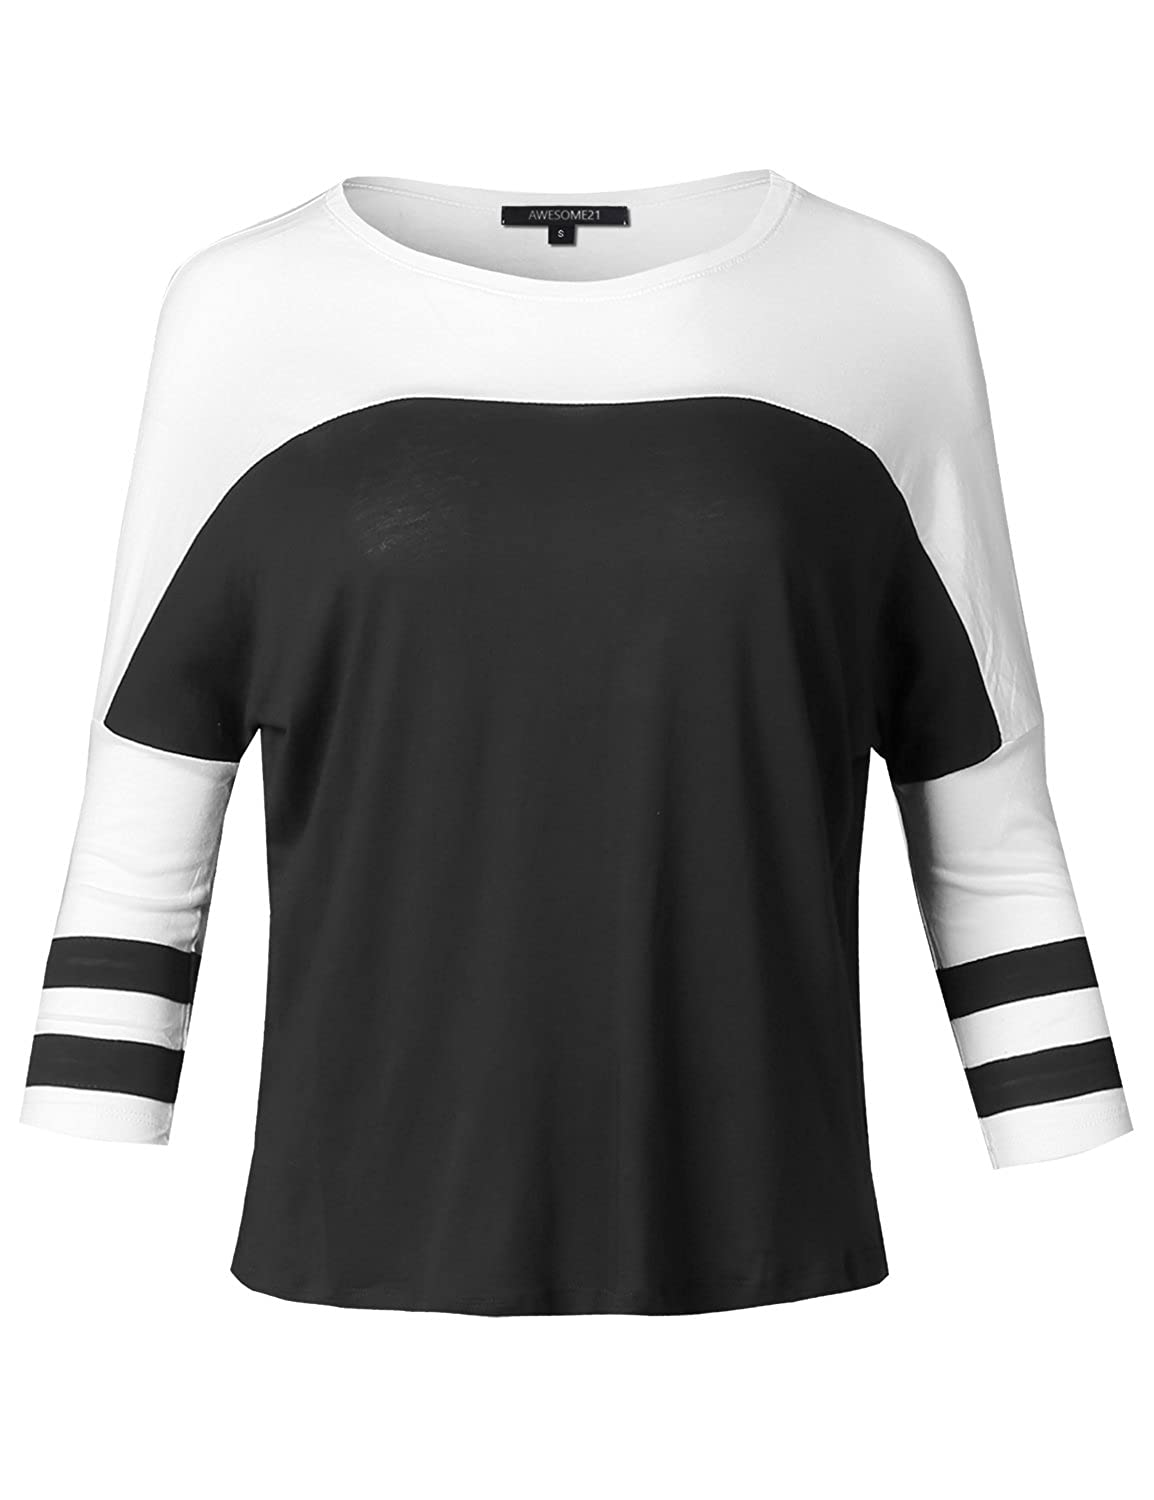 Pro tag 100 cotton 3 4 sleeve raglan baseball shirt in white black - Amazon Com Awesome21 Women S Color Contrast Sleeve Raglan Baseball Tee Top Clothing